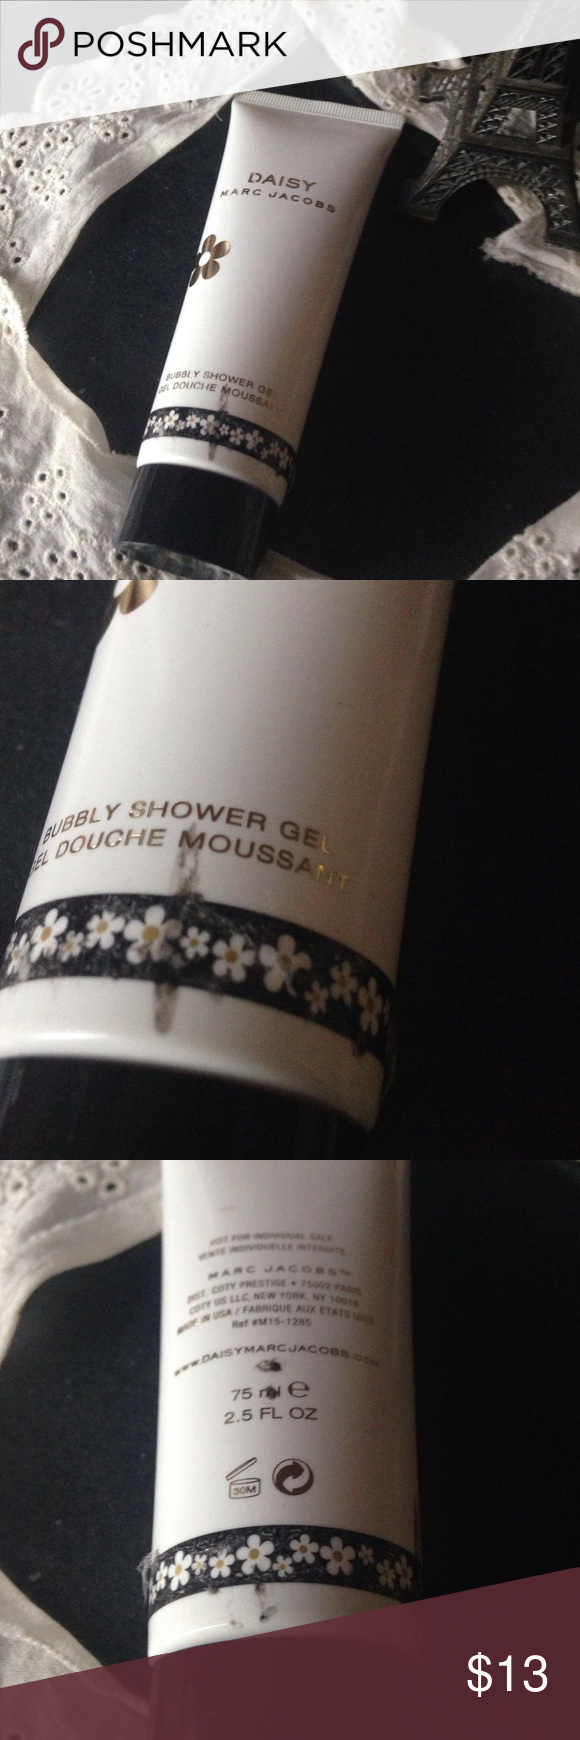 Marc Jacobs daisy shower gel Never used. Like new. 75ml. Only flaws is the package shown. Bundle to save Marc Jacobs Other